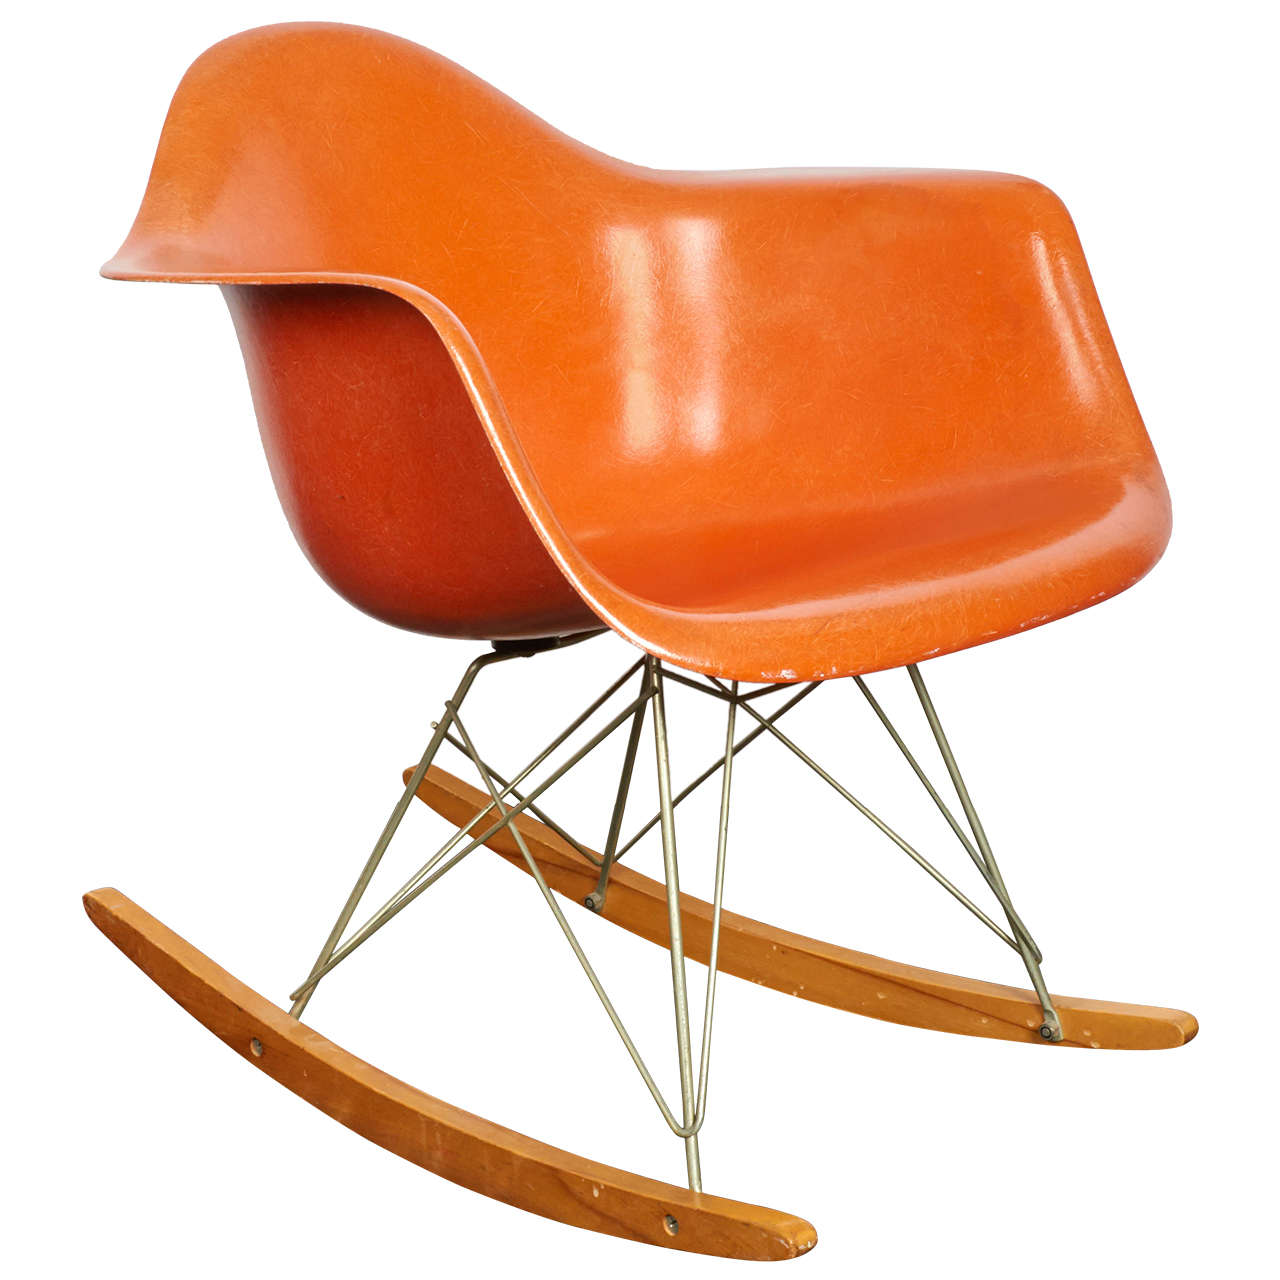 Delightful Charles And Ray Eames Orange Fiberglass Rocker, Manufactured By Herman  Miller For Sale